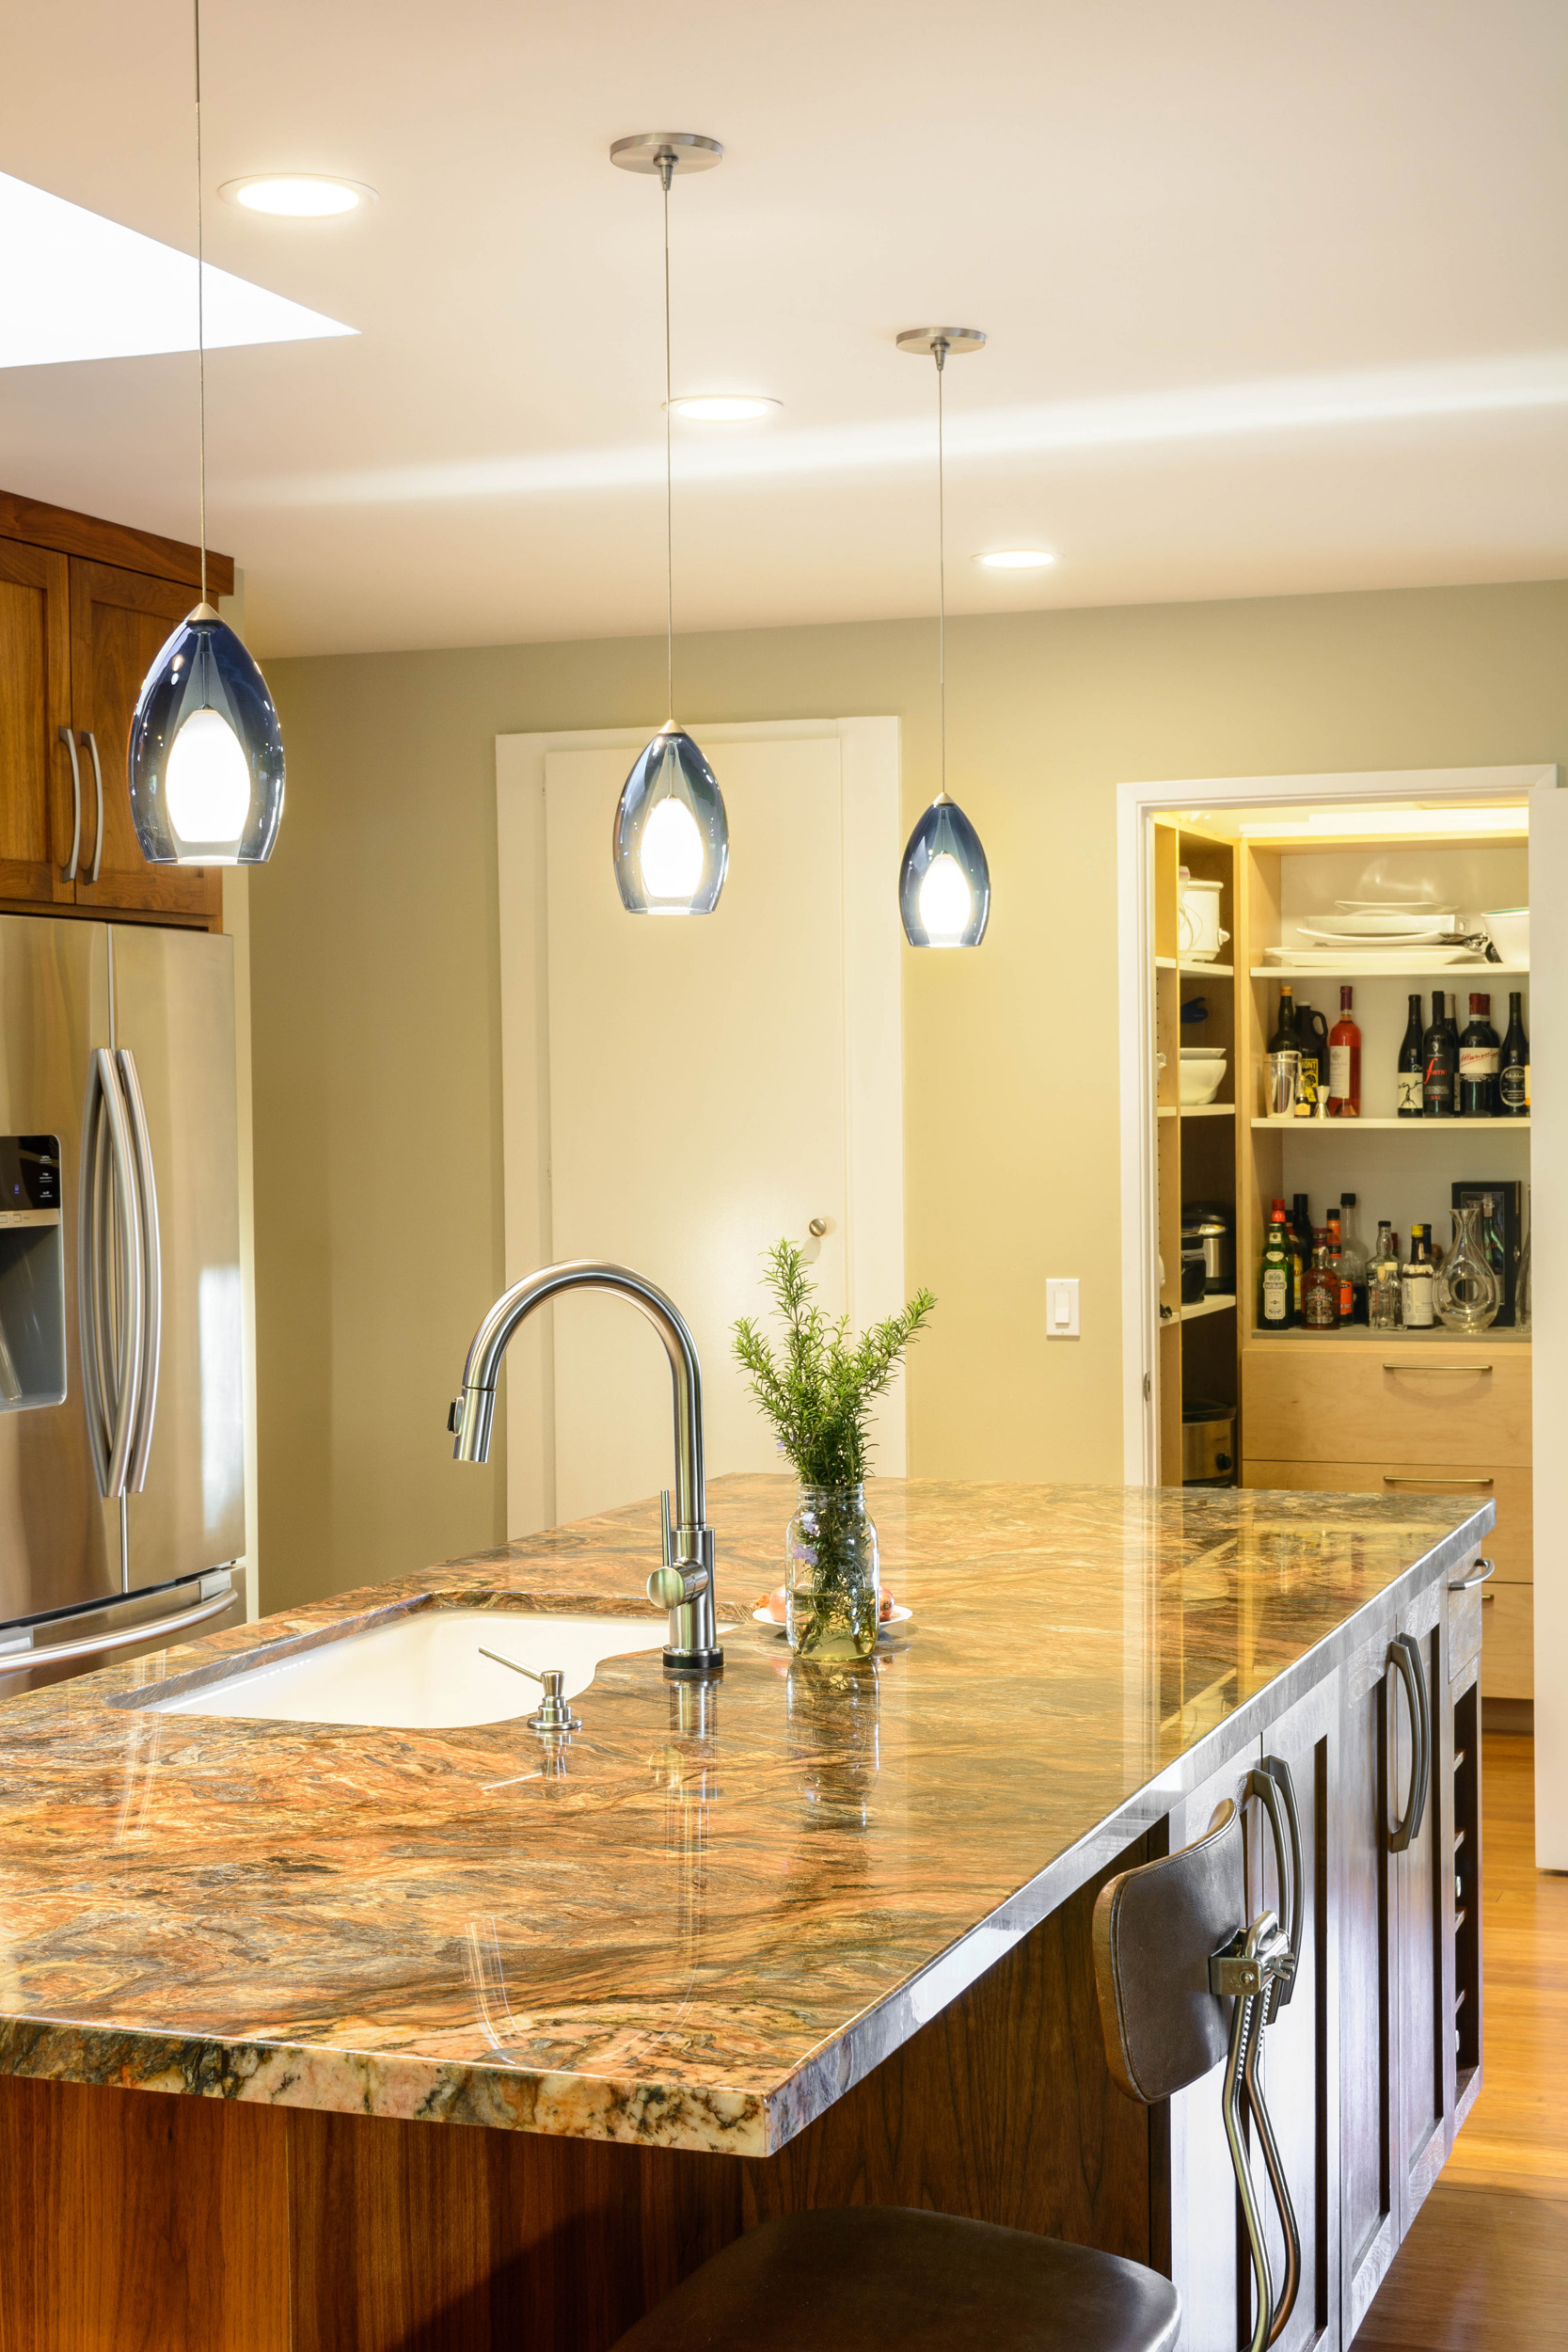 Kitchen island with sink and bar seating for one: a nice way to mingle